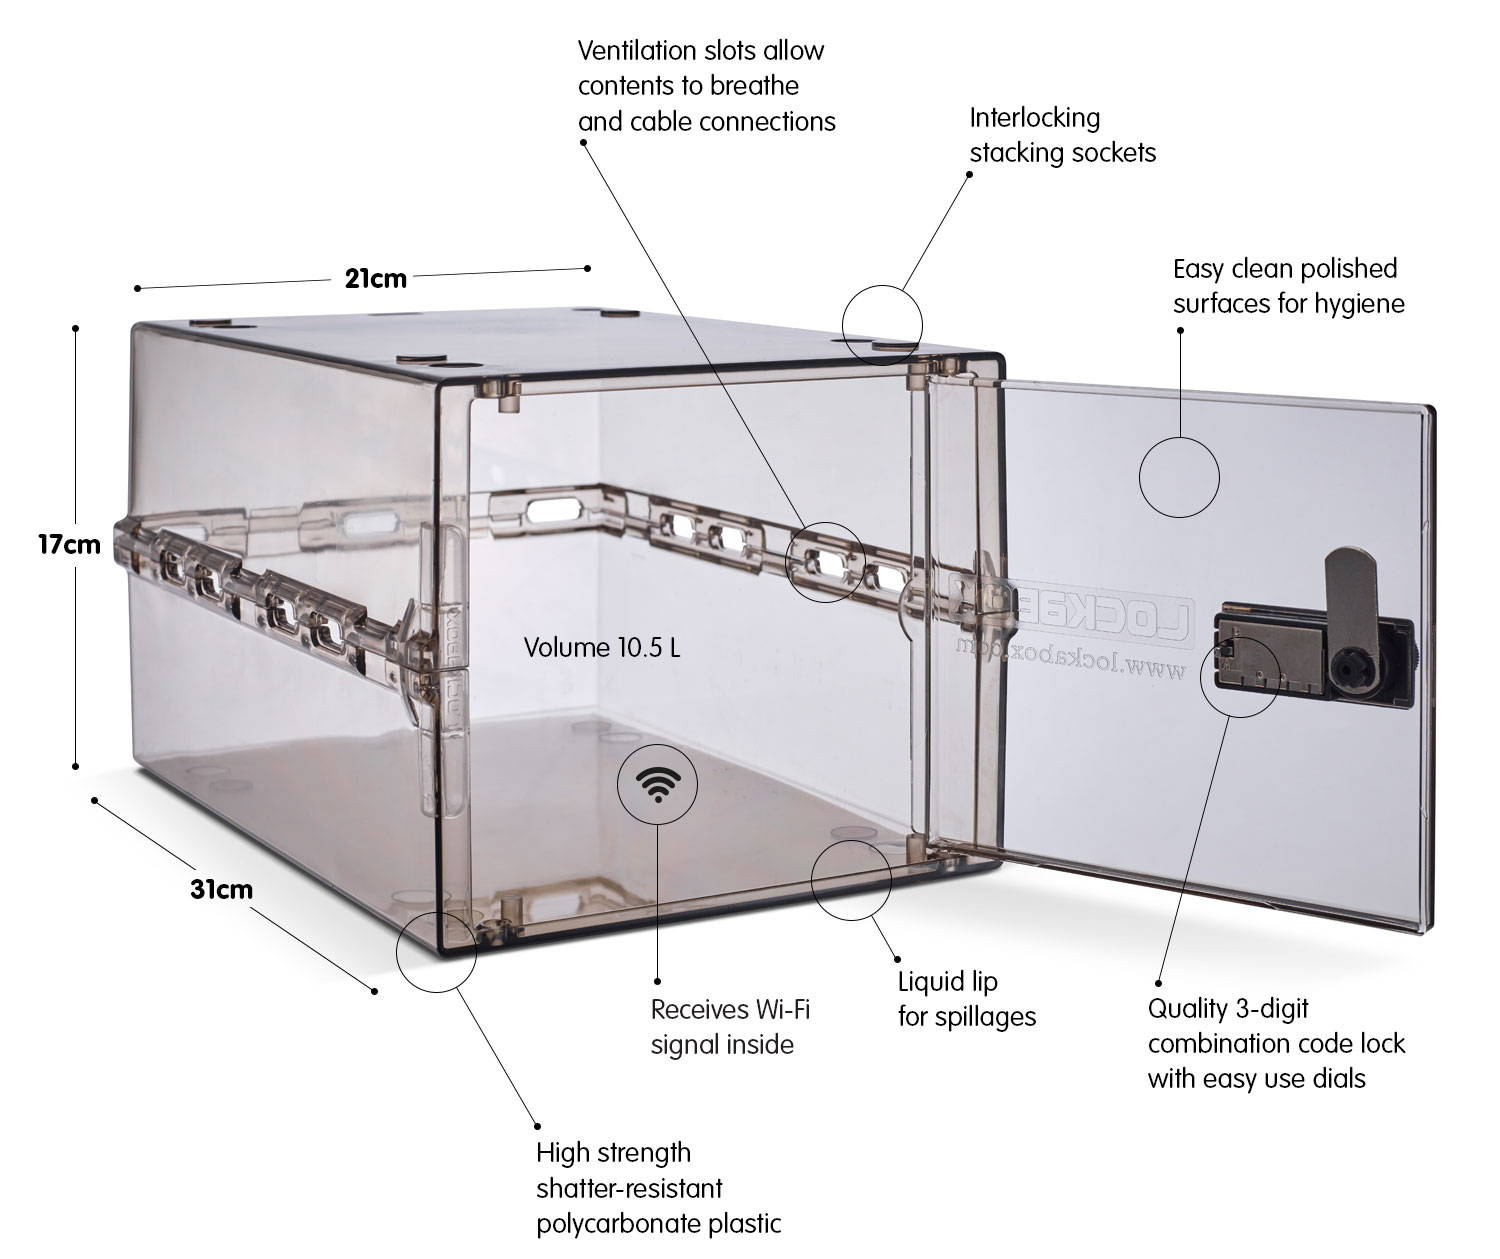 Technical features of the Lockabox One lockable storage solution